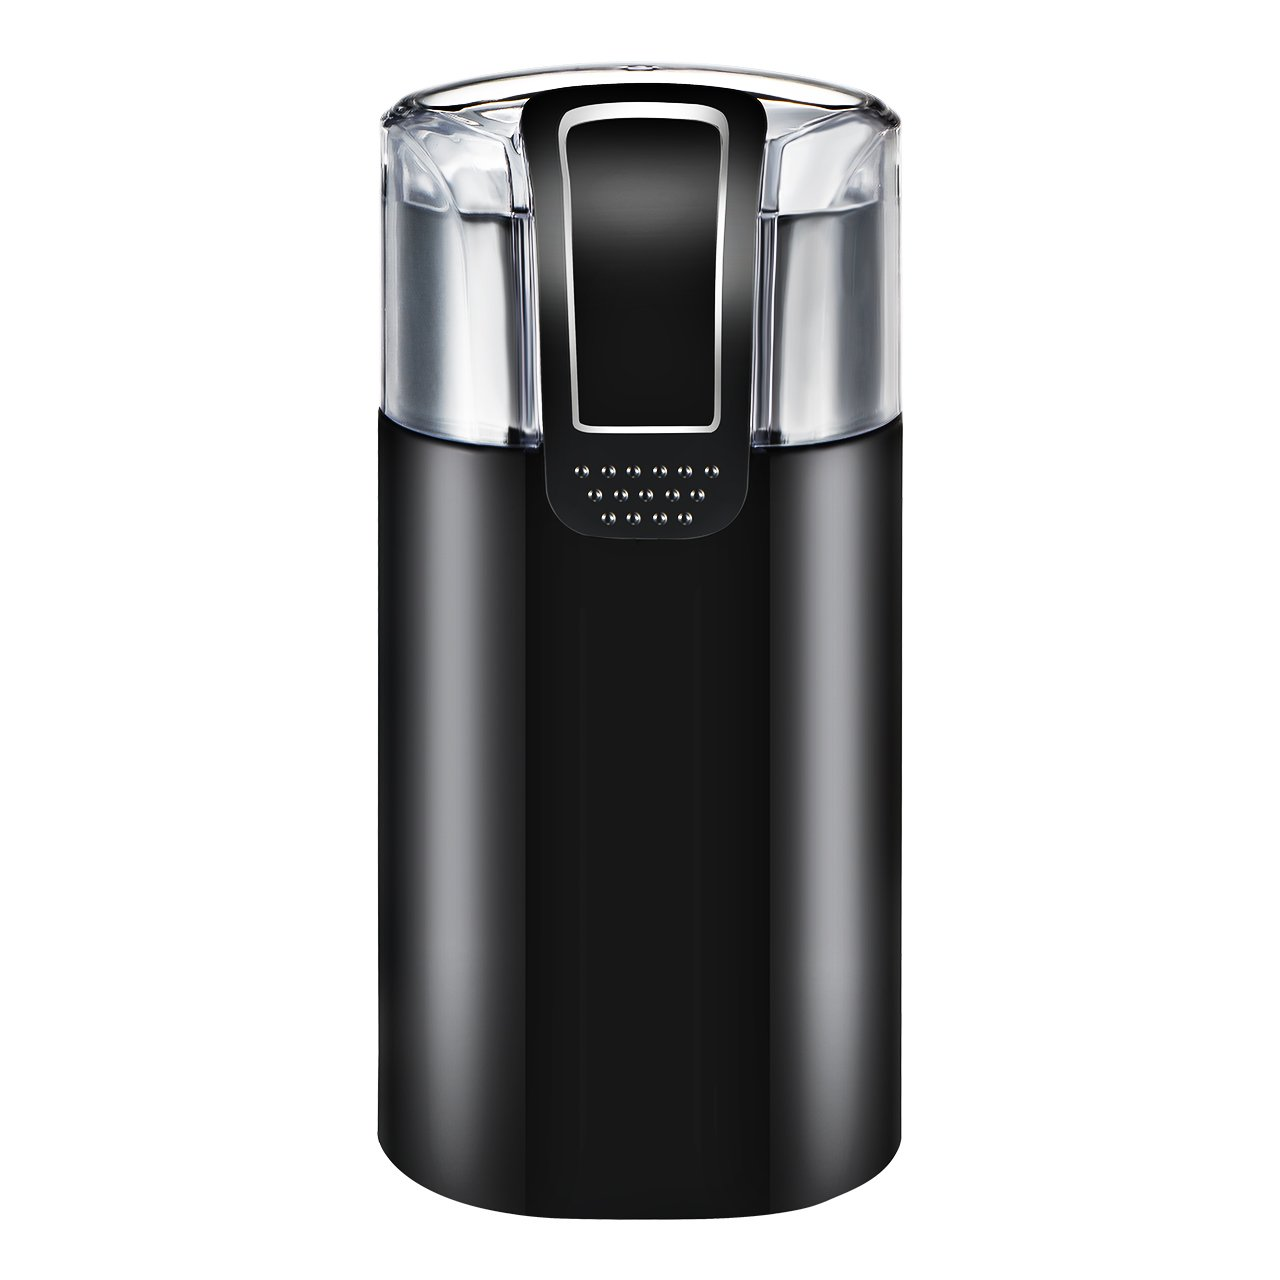 Homitt Coffee Grinder, Electric Coffee Bean Grinder with Noiseless Motor and 301 Stainless Steel Blades for Evenly and Versatile Grinding- One Touch Design Supports Home and Office Portable Use